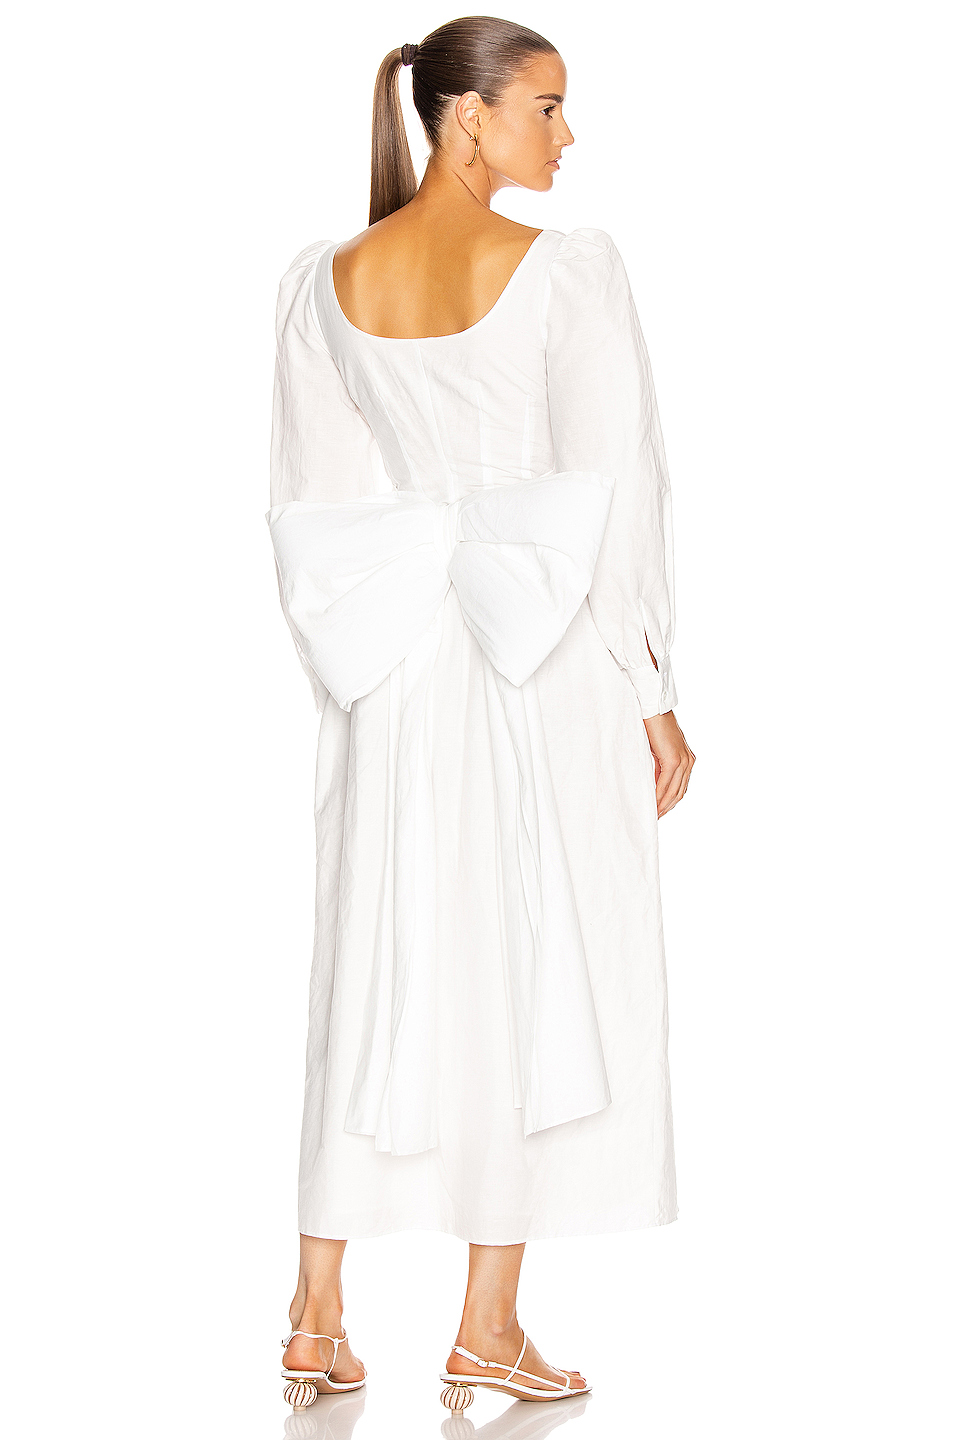 Brock Collection Quaneisha Maxi Dress In White Fwrd In 2020 Maxi Dress White Dress Fashion